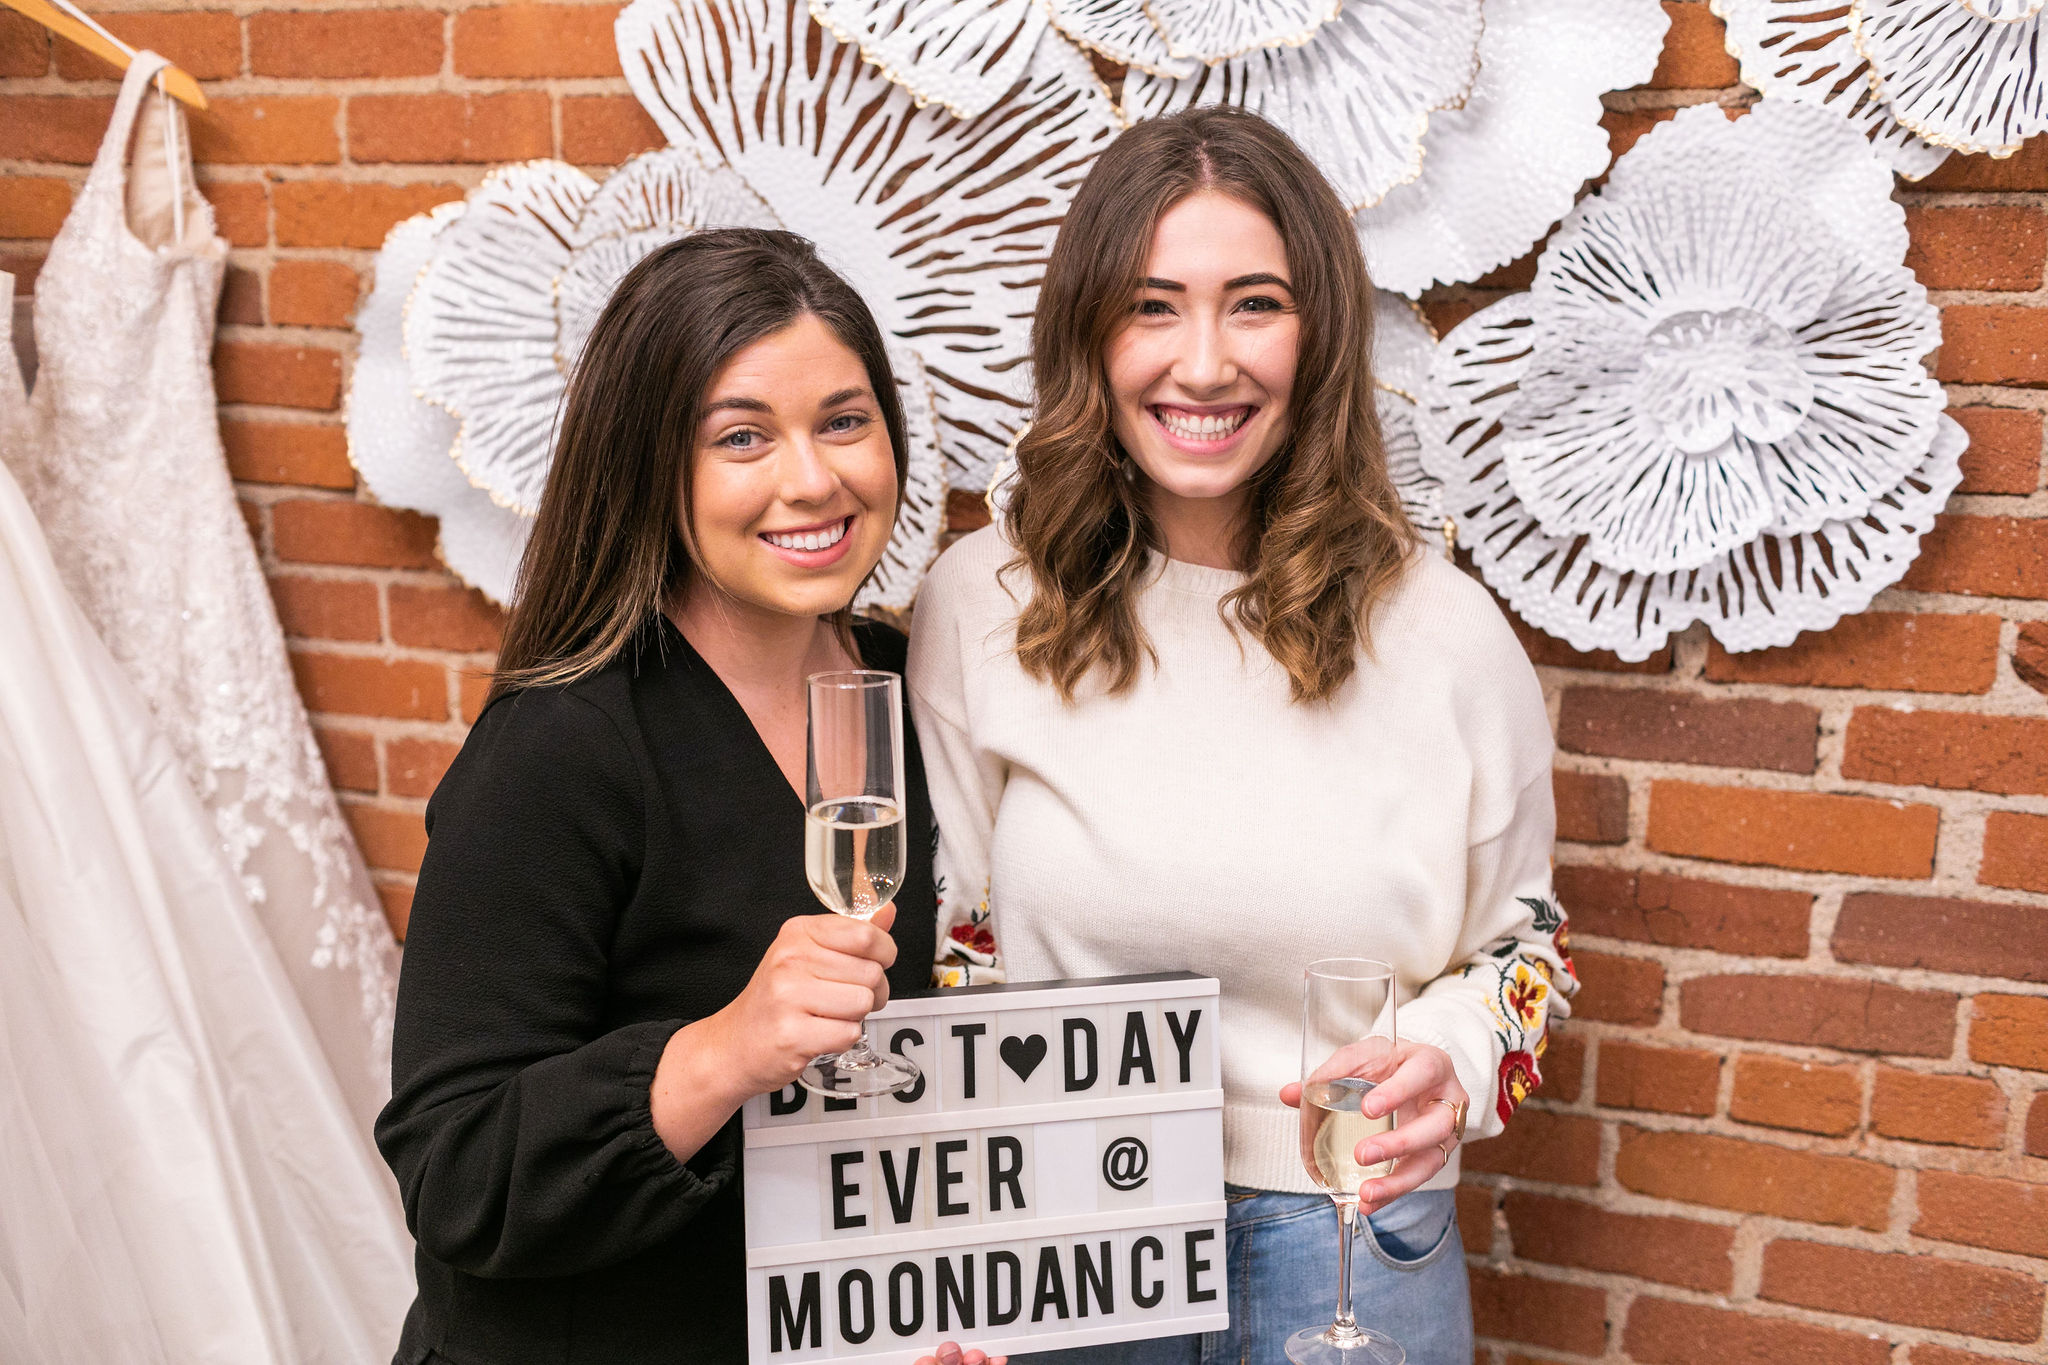 THANK YOU! - A huge thank you to Cameron Ingalls and the entire The Wedding Standard team for helping share the Moondance Experience with our wonderful Central Coast Brides!Photos by: Cameron IngallsWritten by: Sarah Strausser